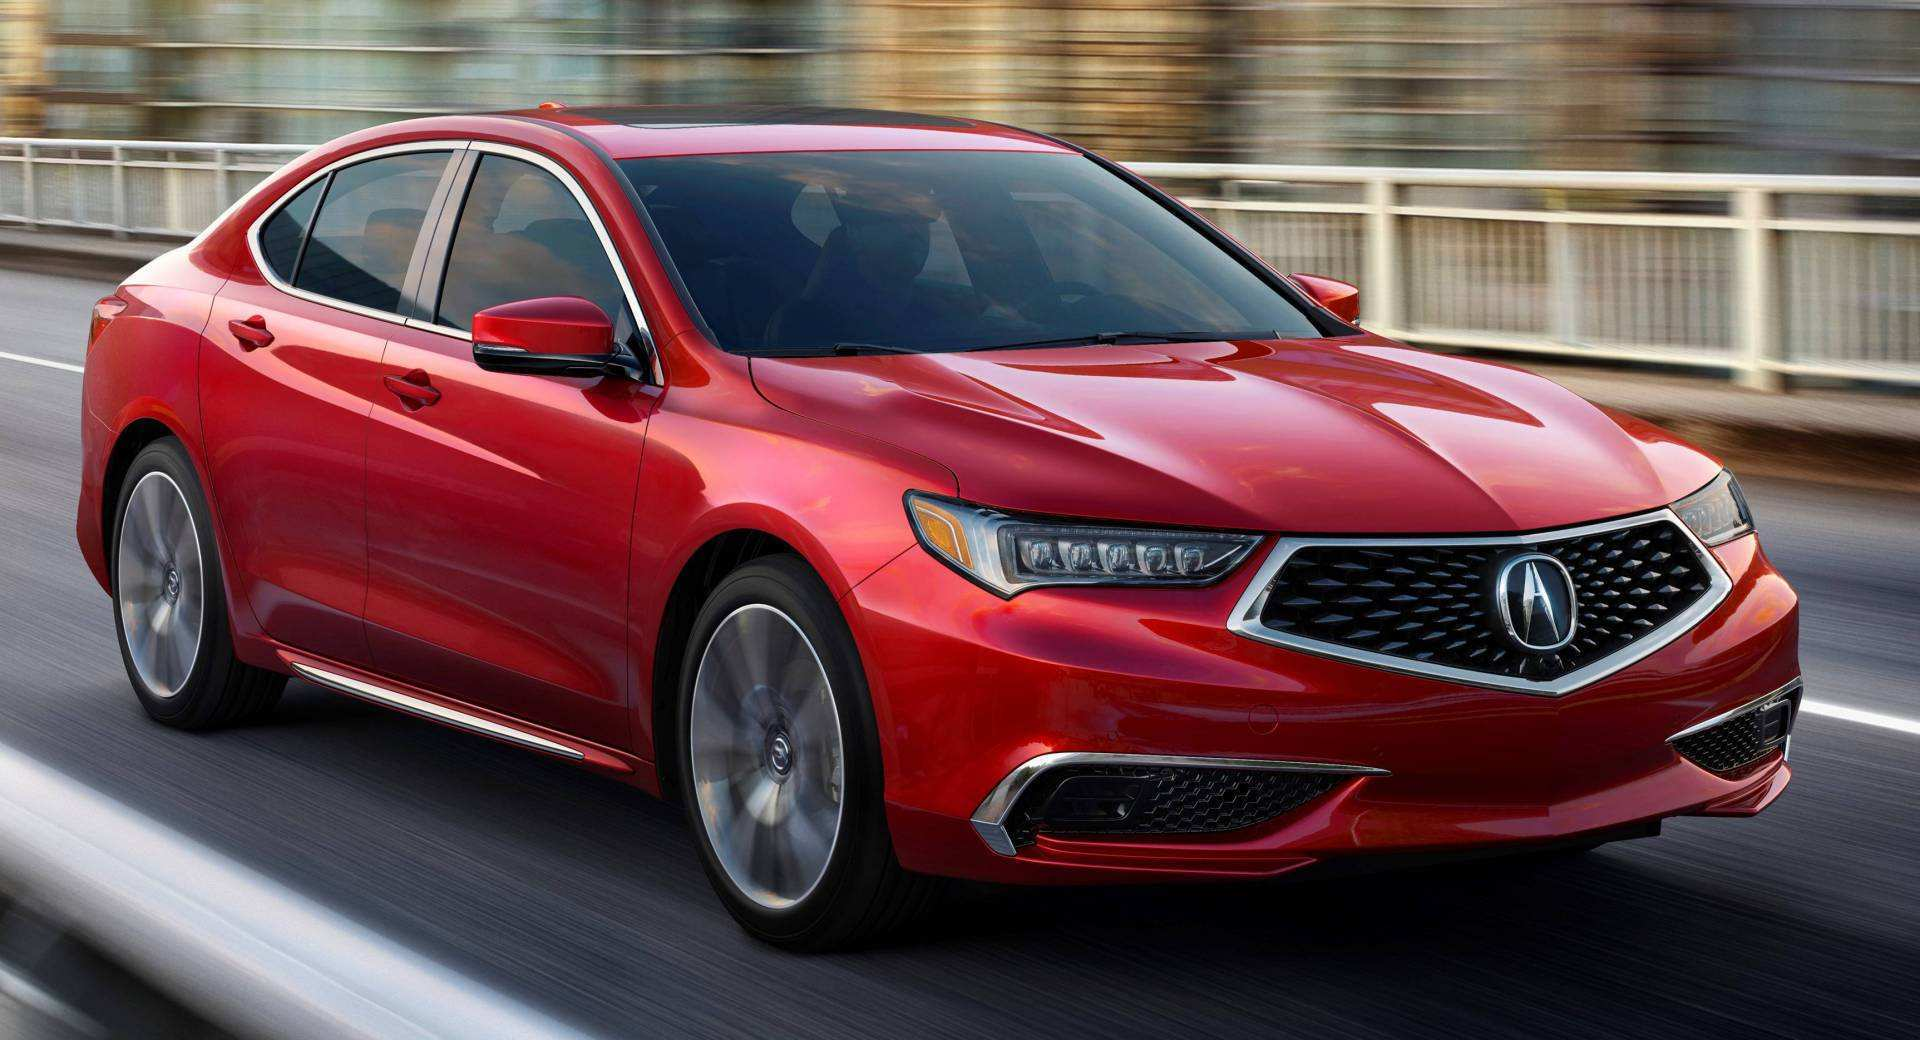 16 New Acura Car 2020 Price And Release Date